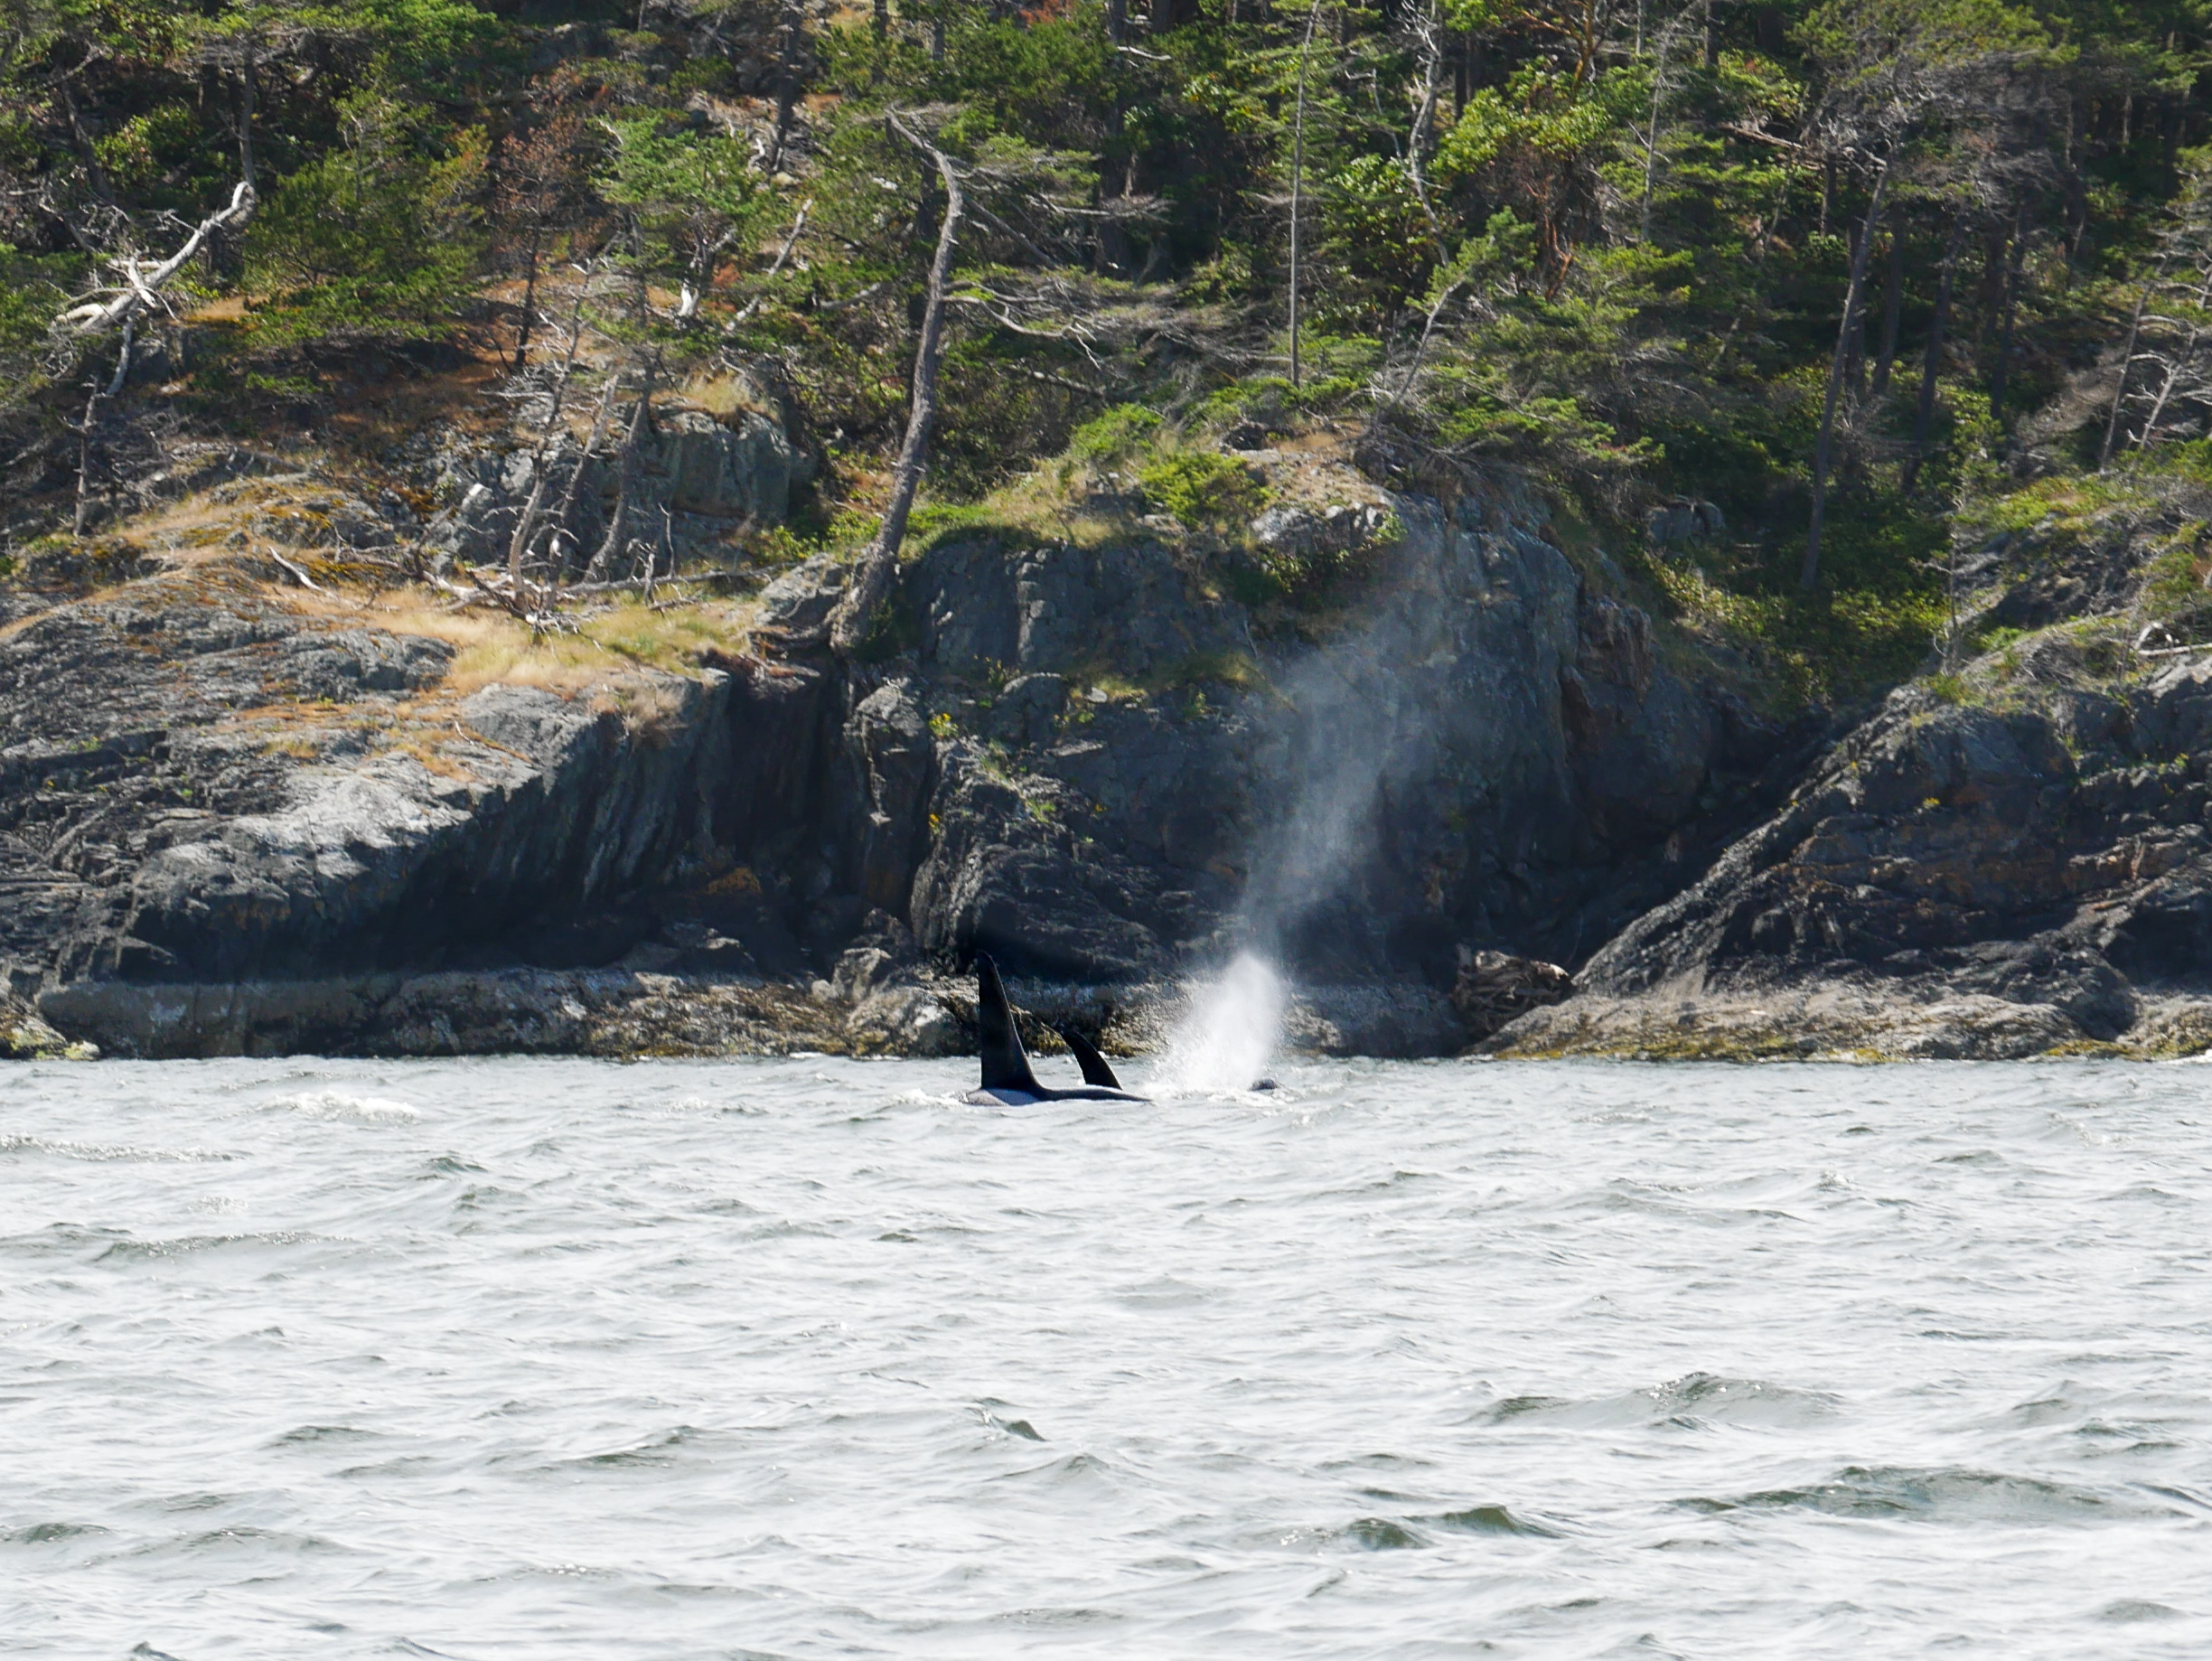 2 Transient Orcas surfacing for a breath. Photo taken by Val Watson.